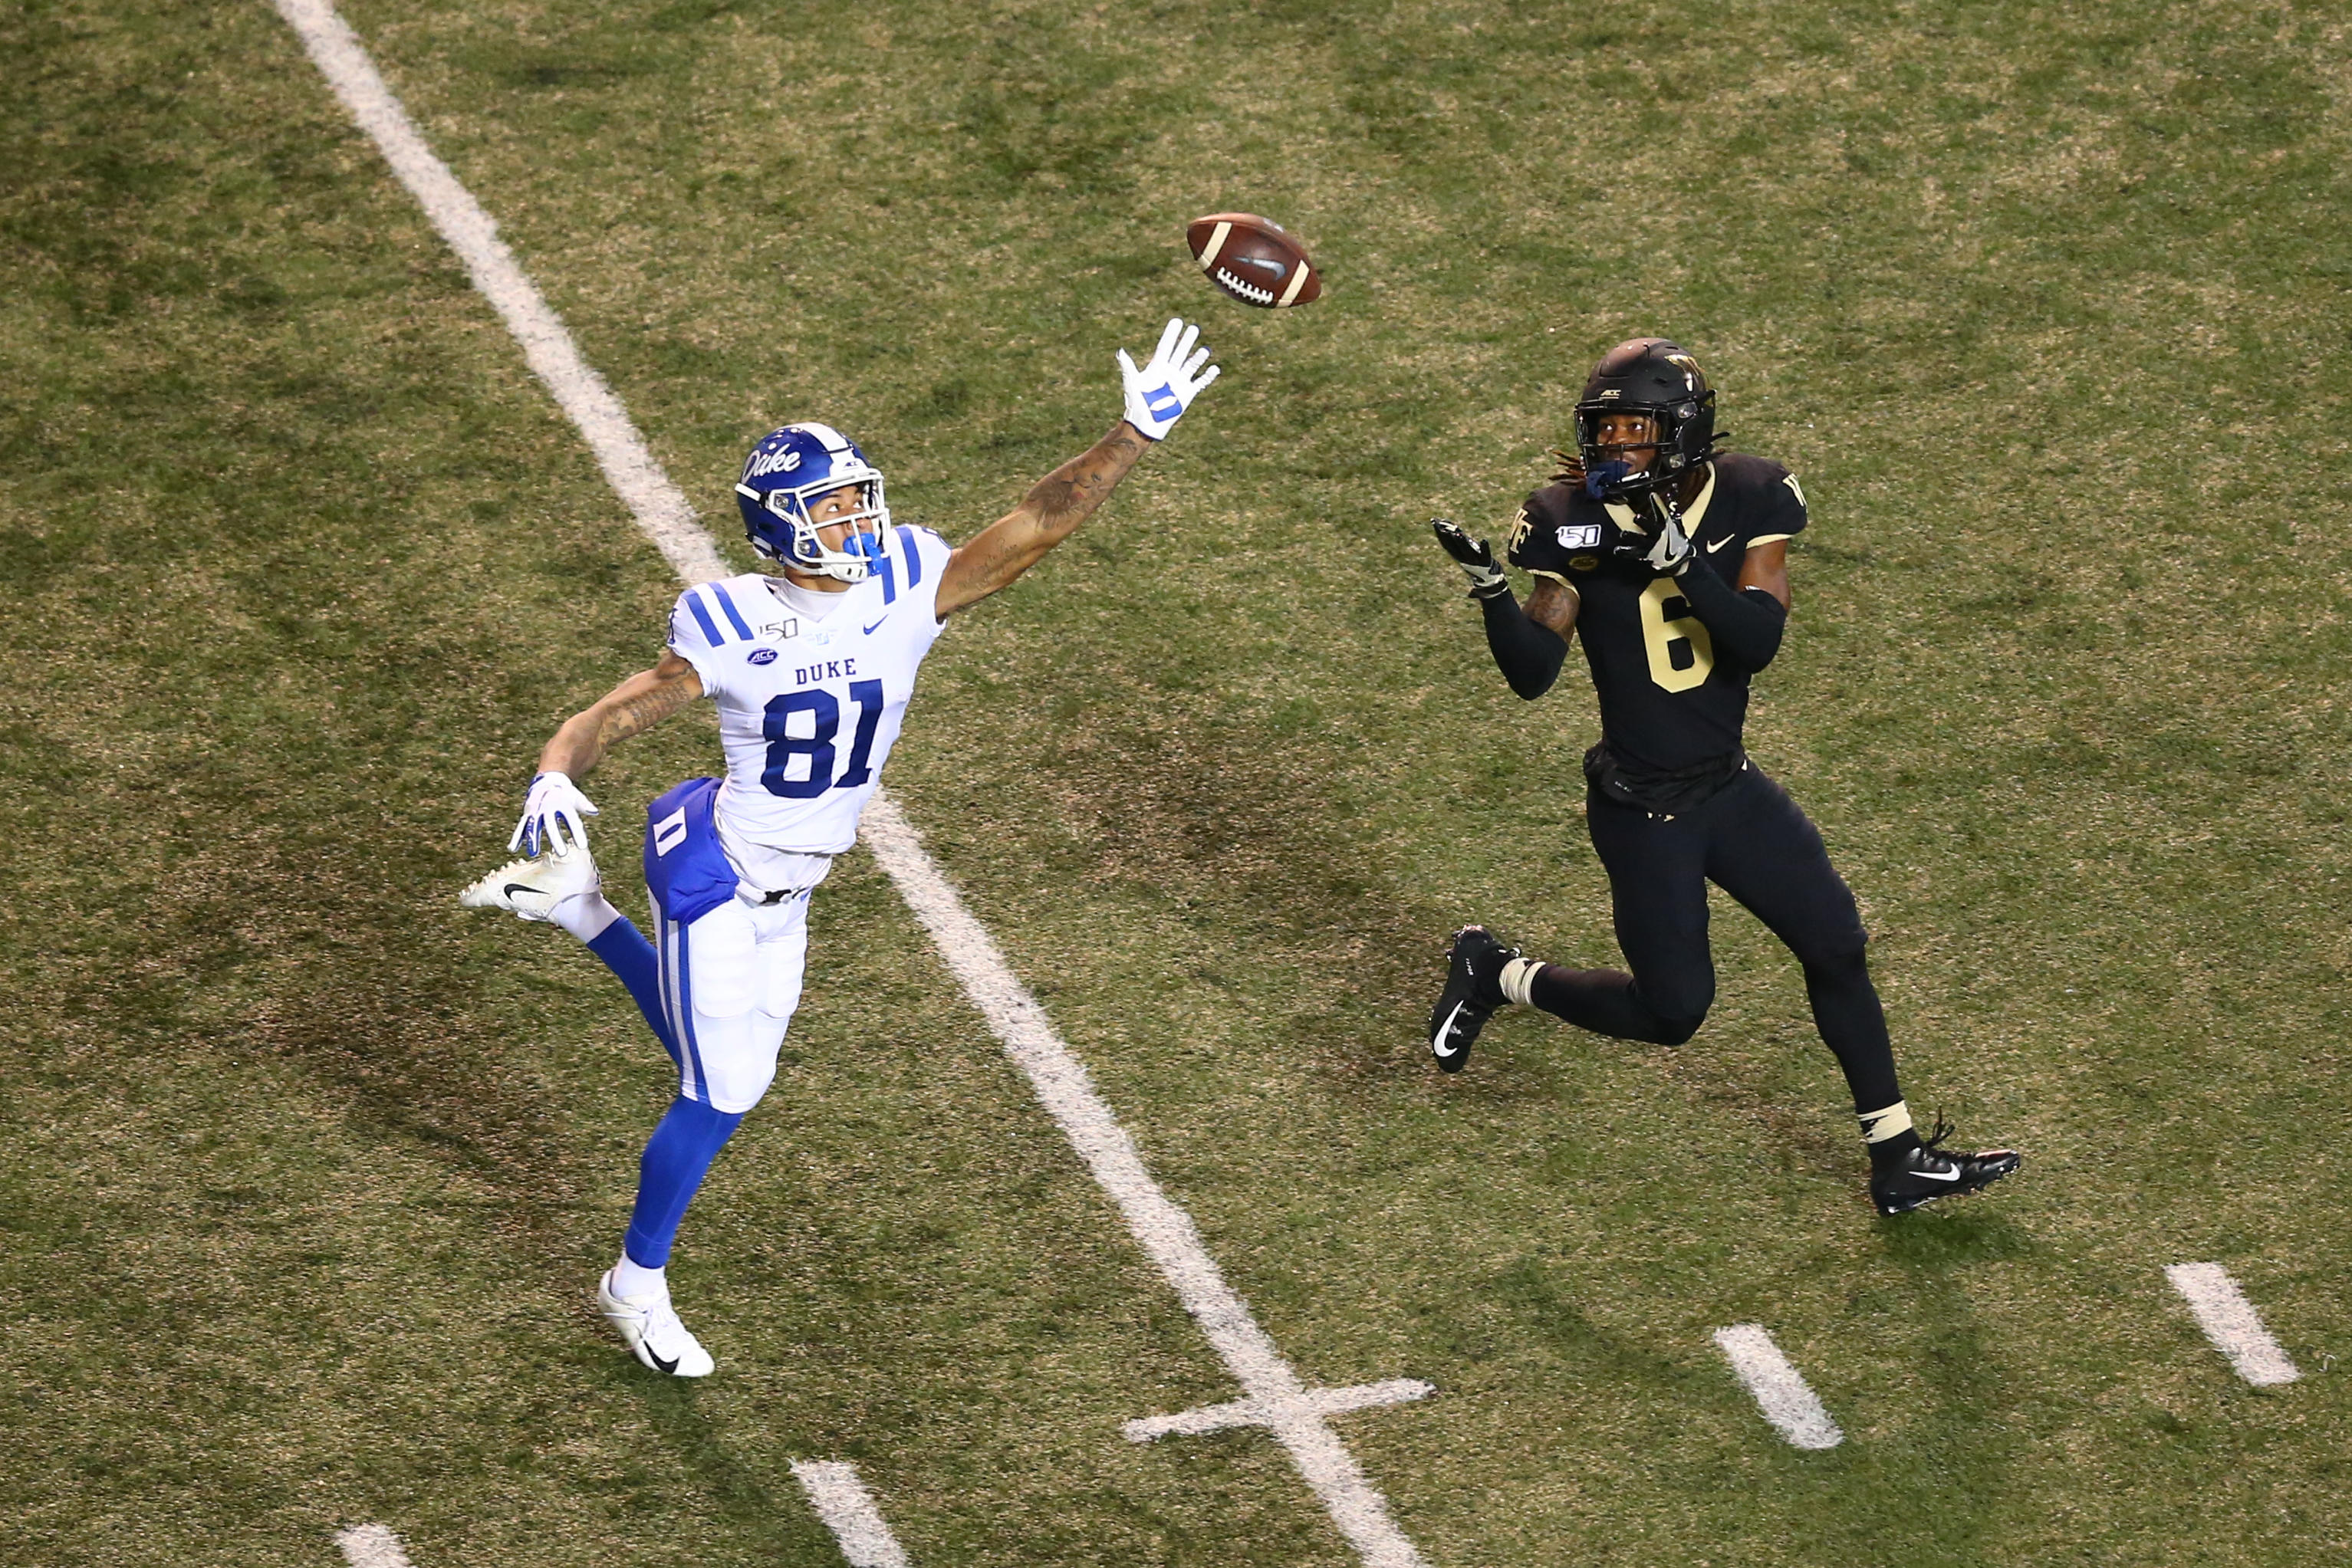 NCAA Football: Duke at Wake Forest